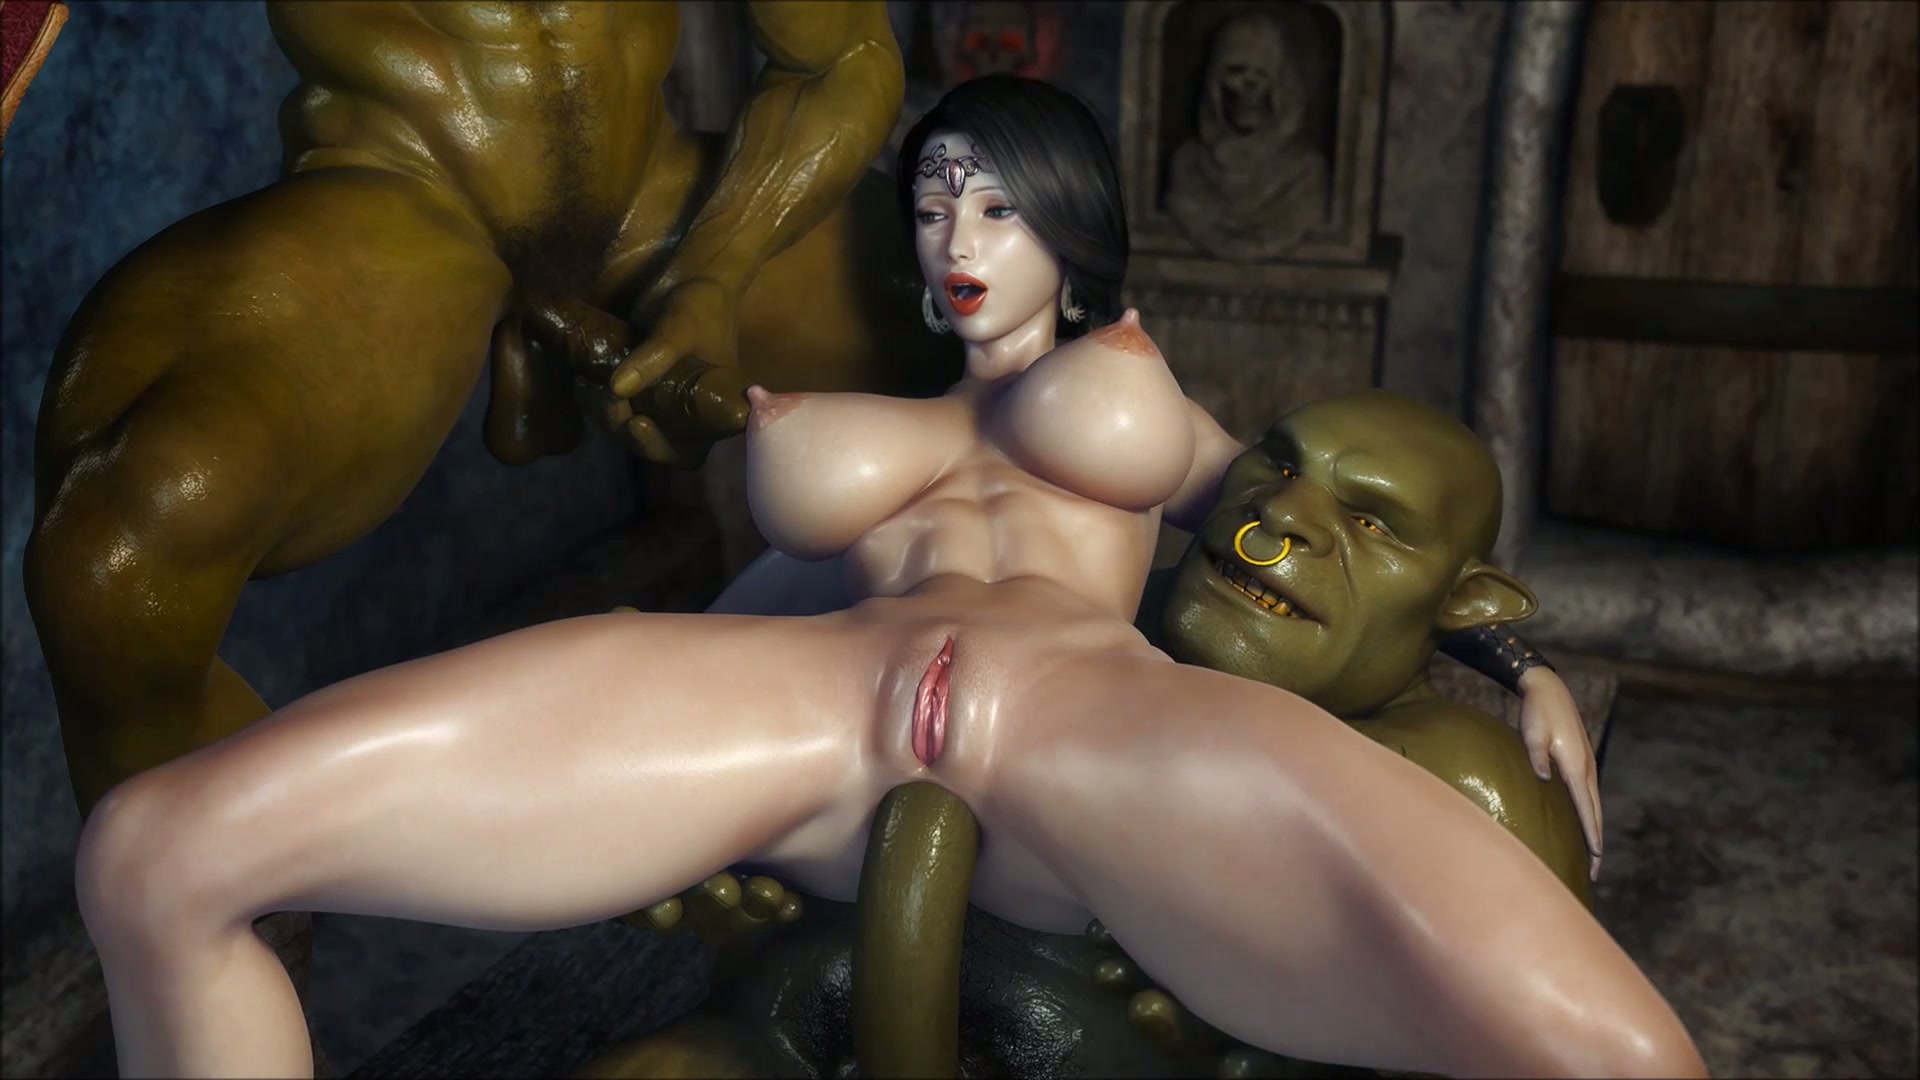 Naked girl and animated beast sex image